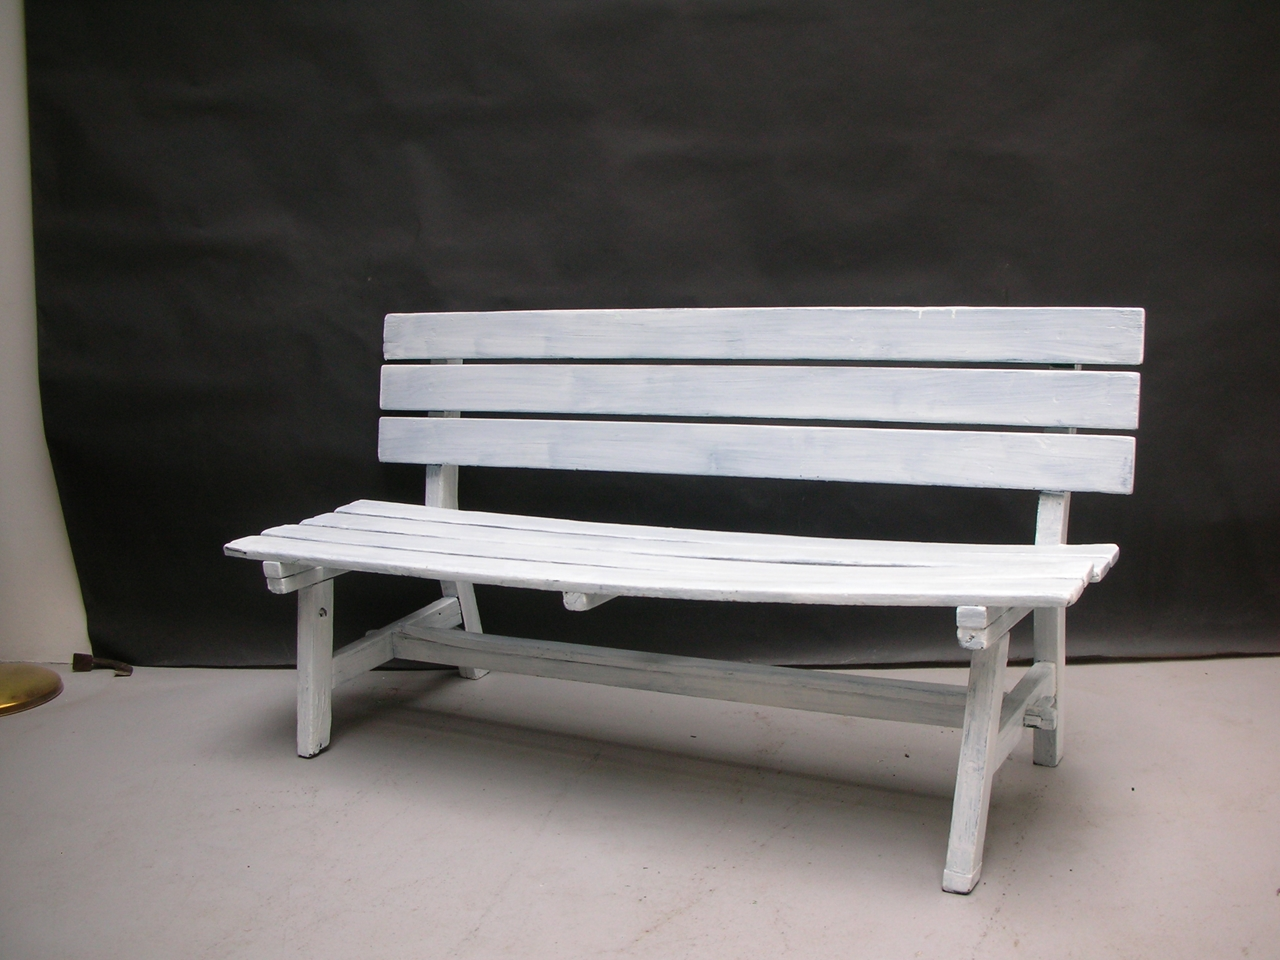 Picture of bench n°3